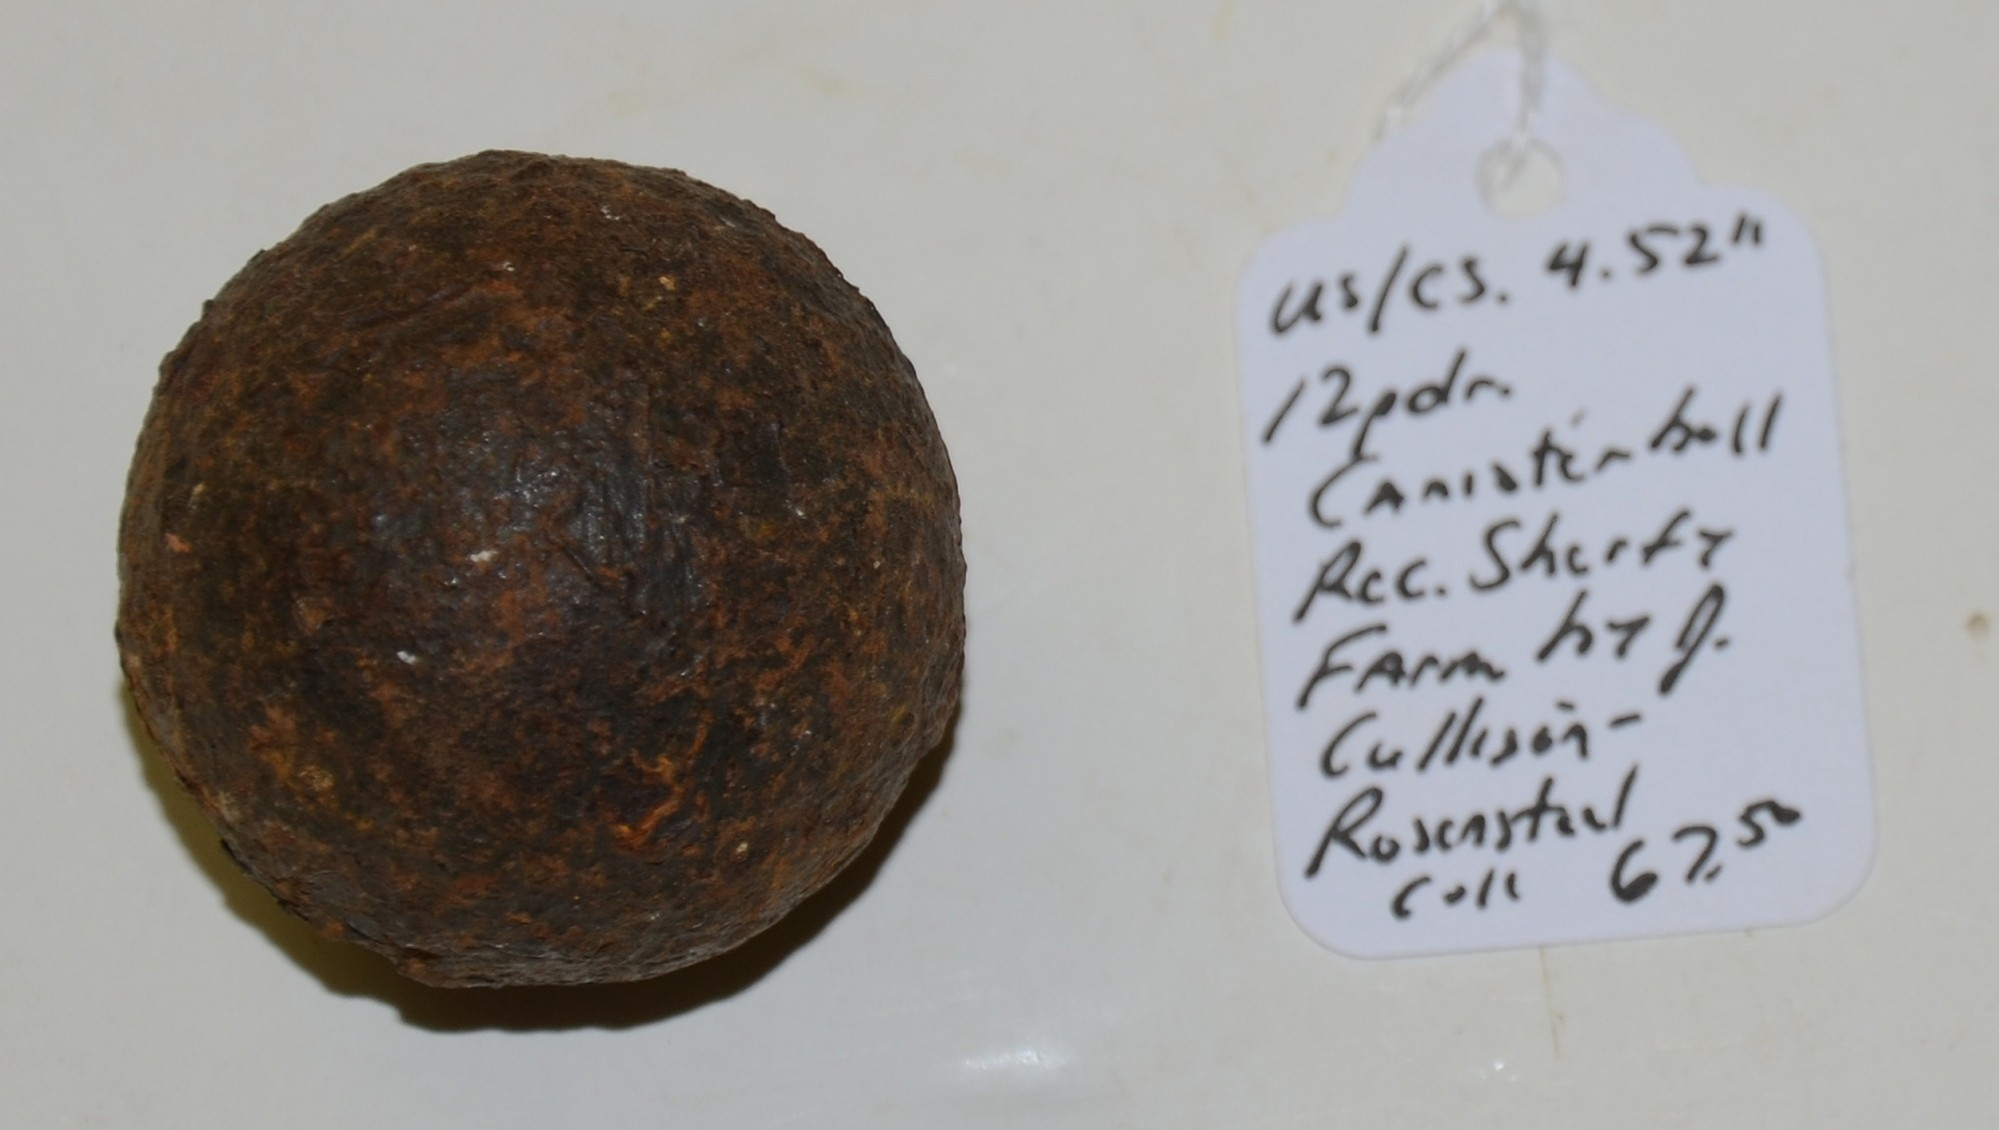 "US/CS 4.52"" 12 PDR. CANISTER BALL RECOVERED ON THE SHERFY FARM, GETTYSBURG"